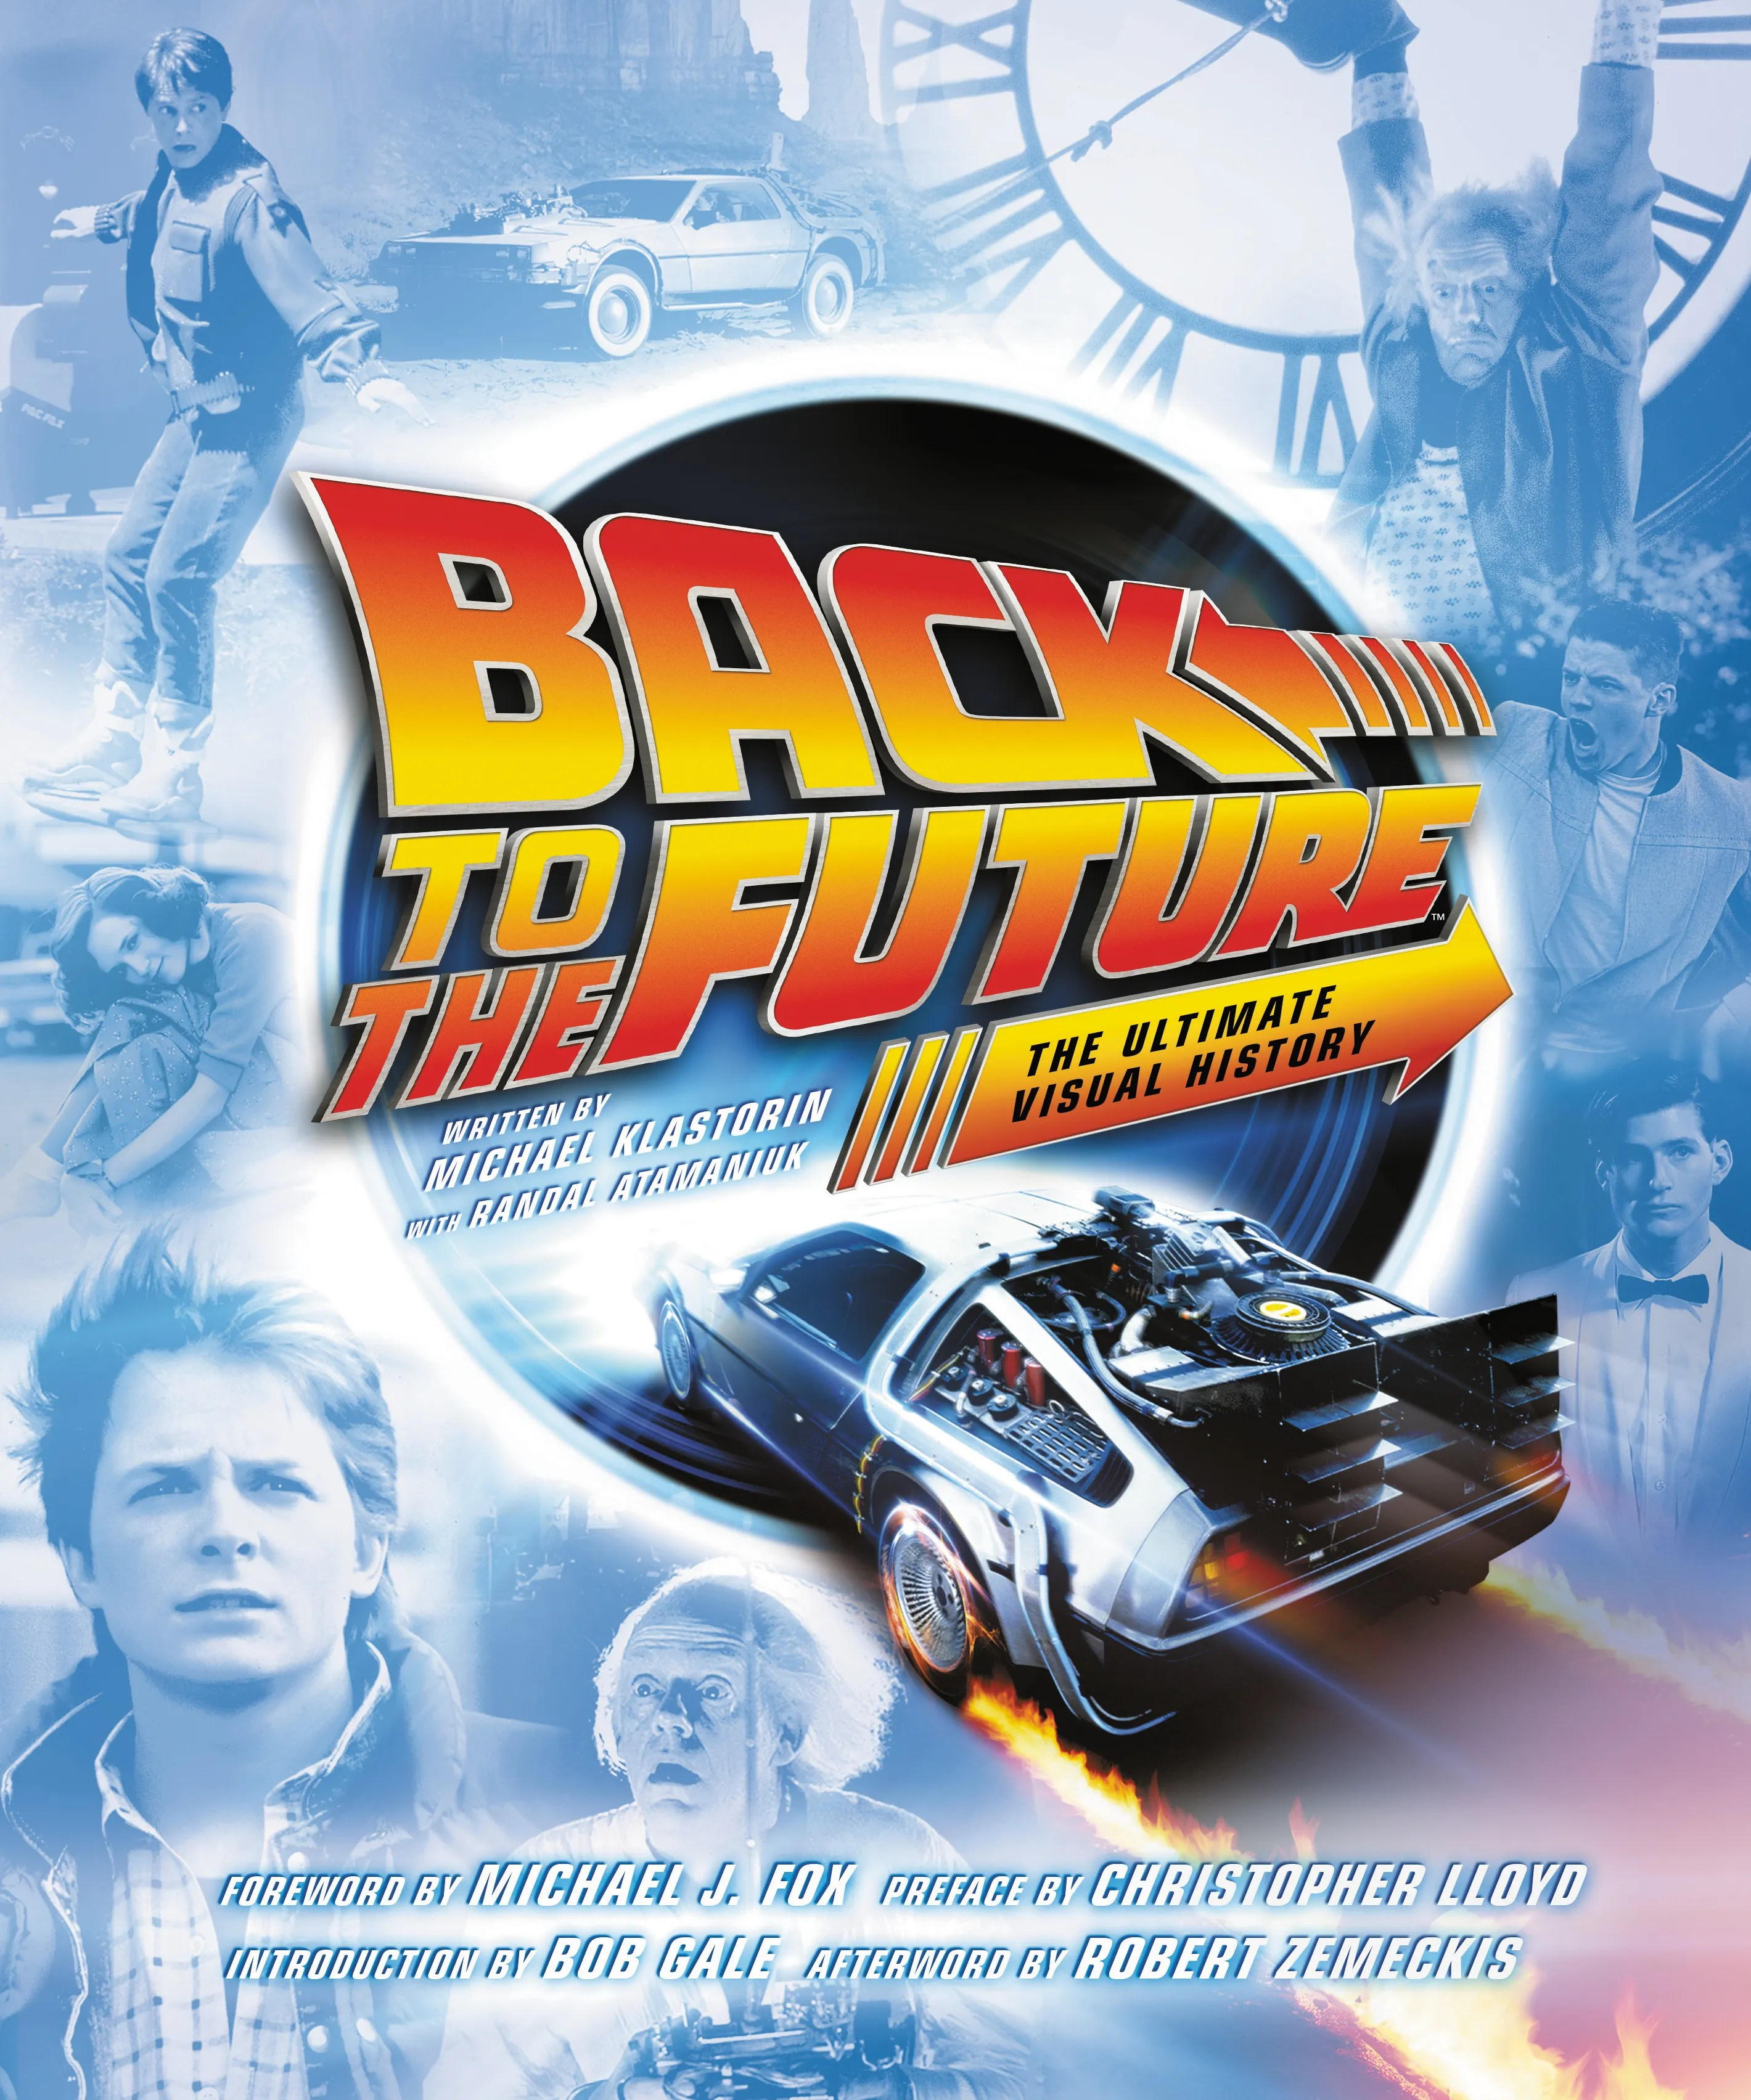 Back To The Future Blu Ray Trilogy Giveaway